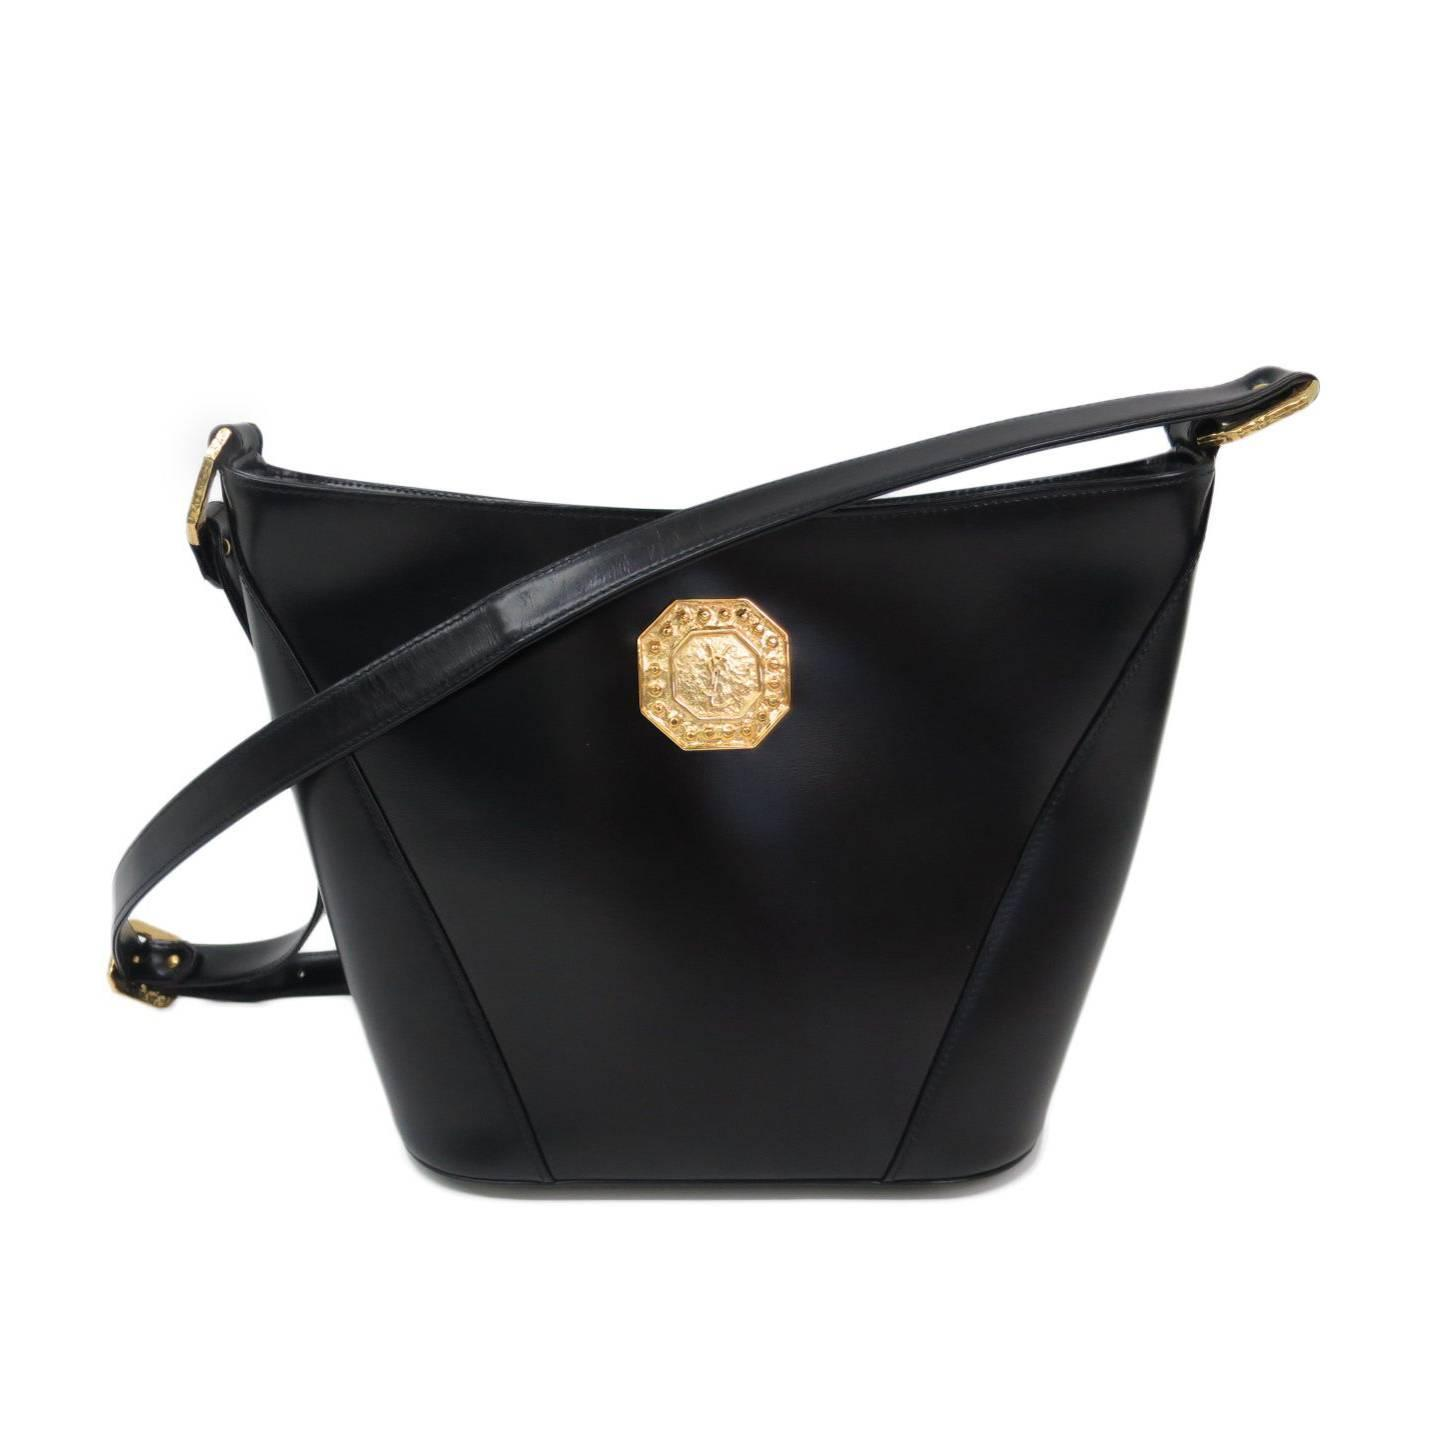 Yves Saint Laurent YSL Black Leather and Gold Hardware Bucket ...